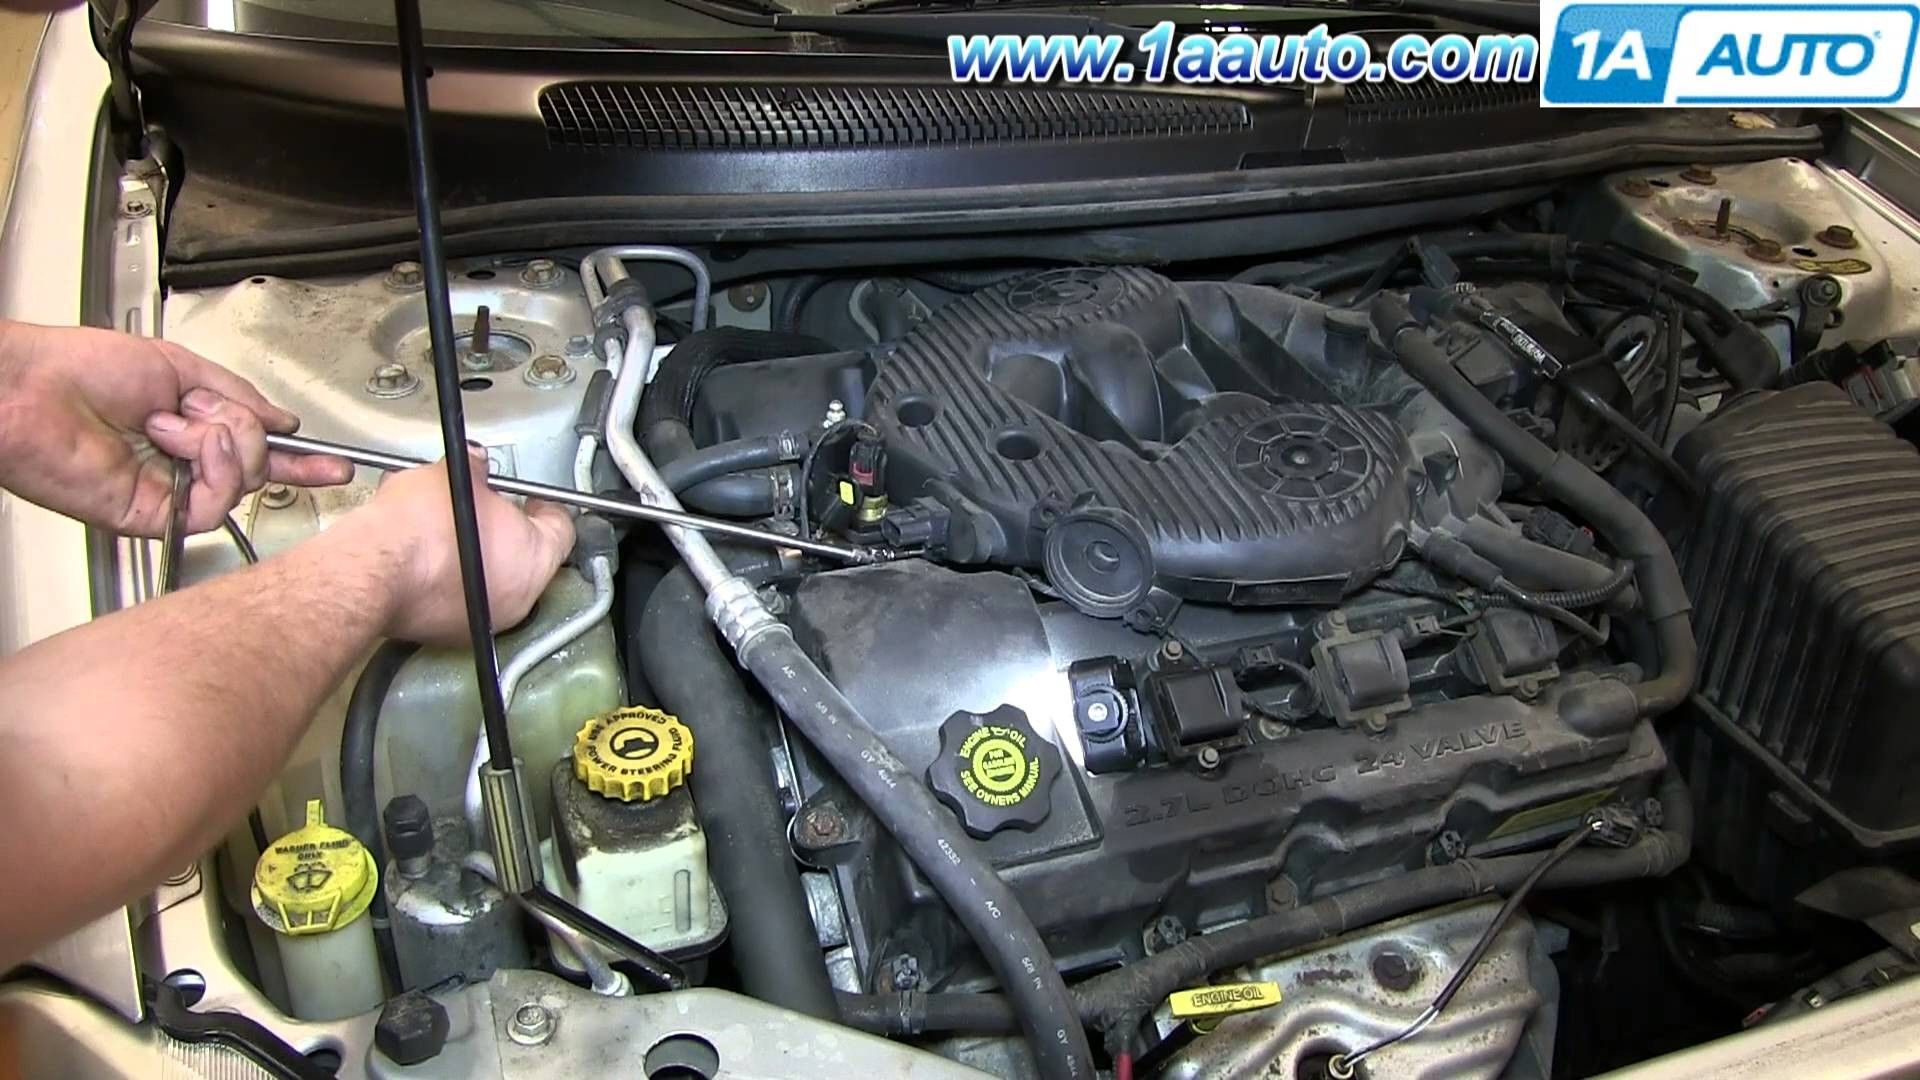 dodge 2 0 engine diagram wiring library Tundra 4.7 Engine Diagram 2000 dodge intrepid 2 7 engine diagram how to install replace manifold pressure map sensor 2001